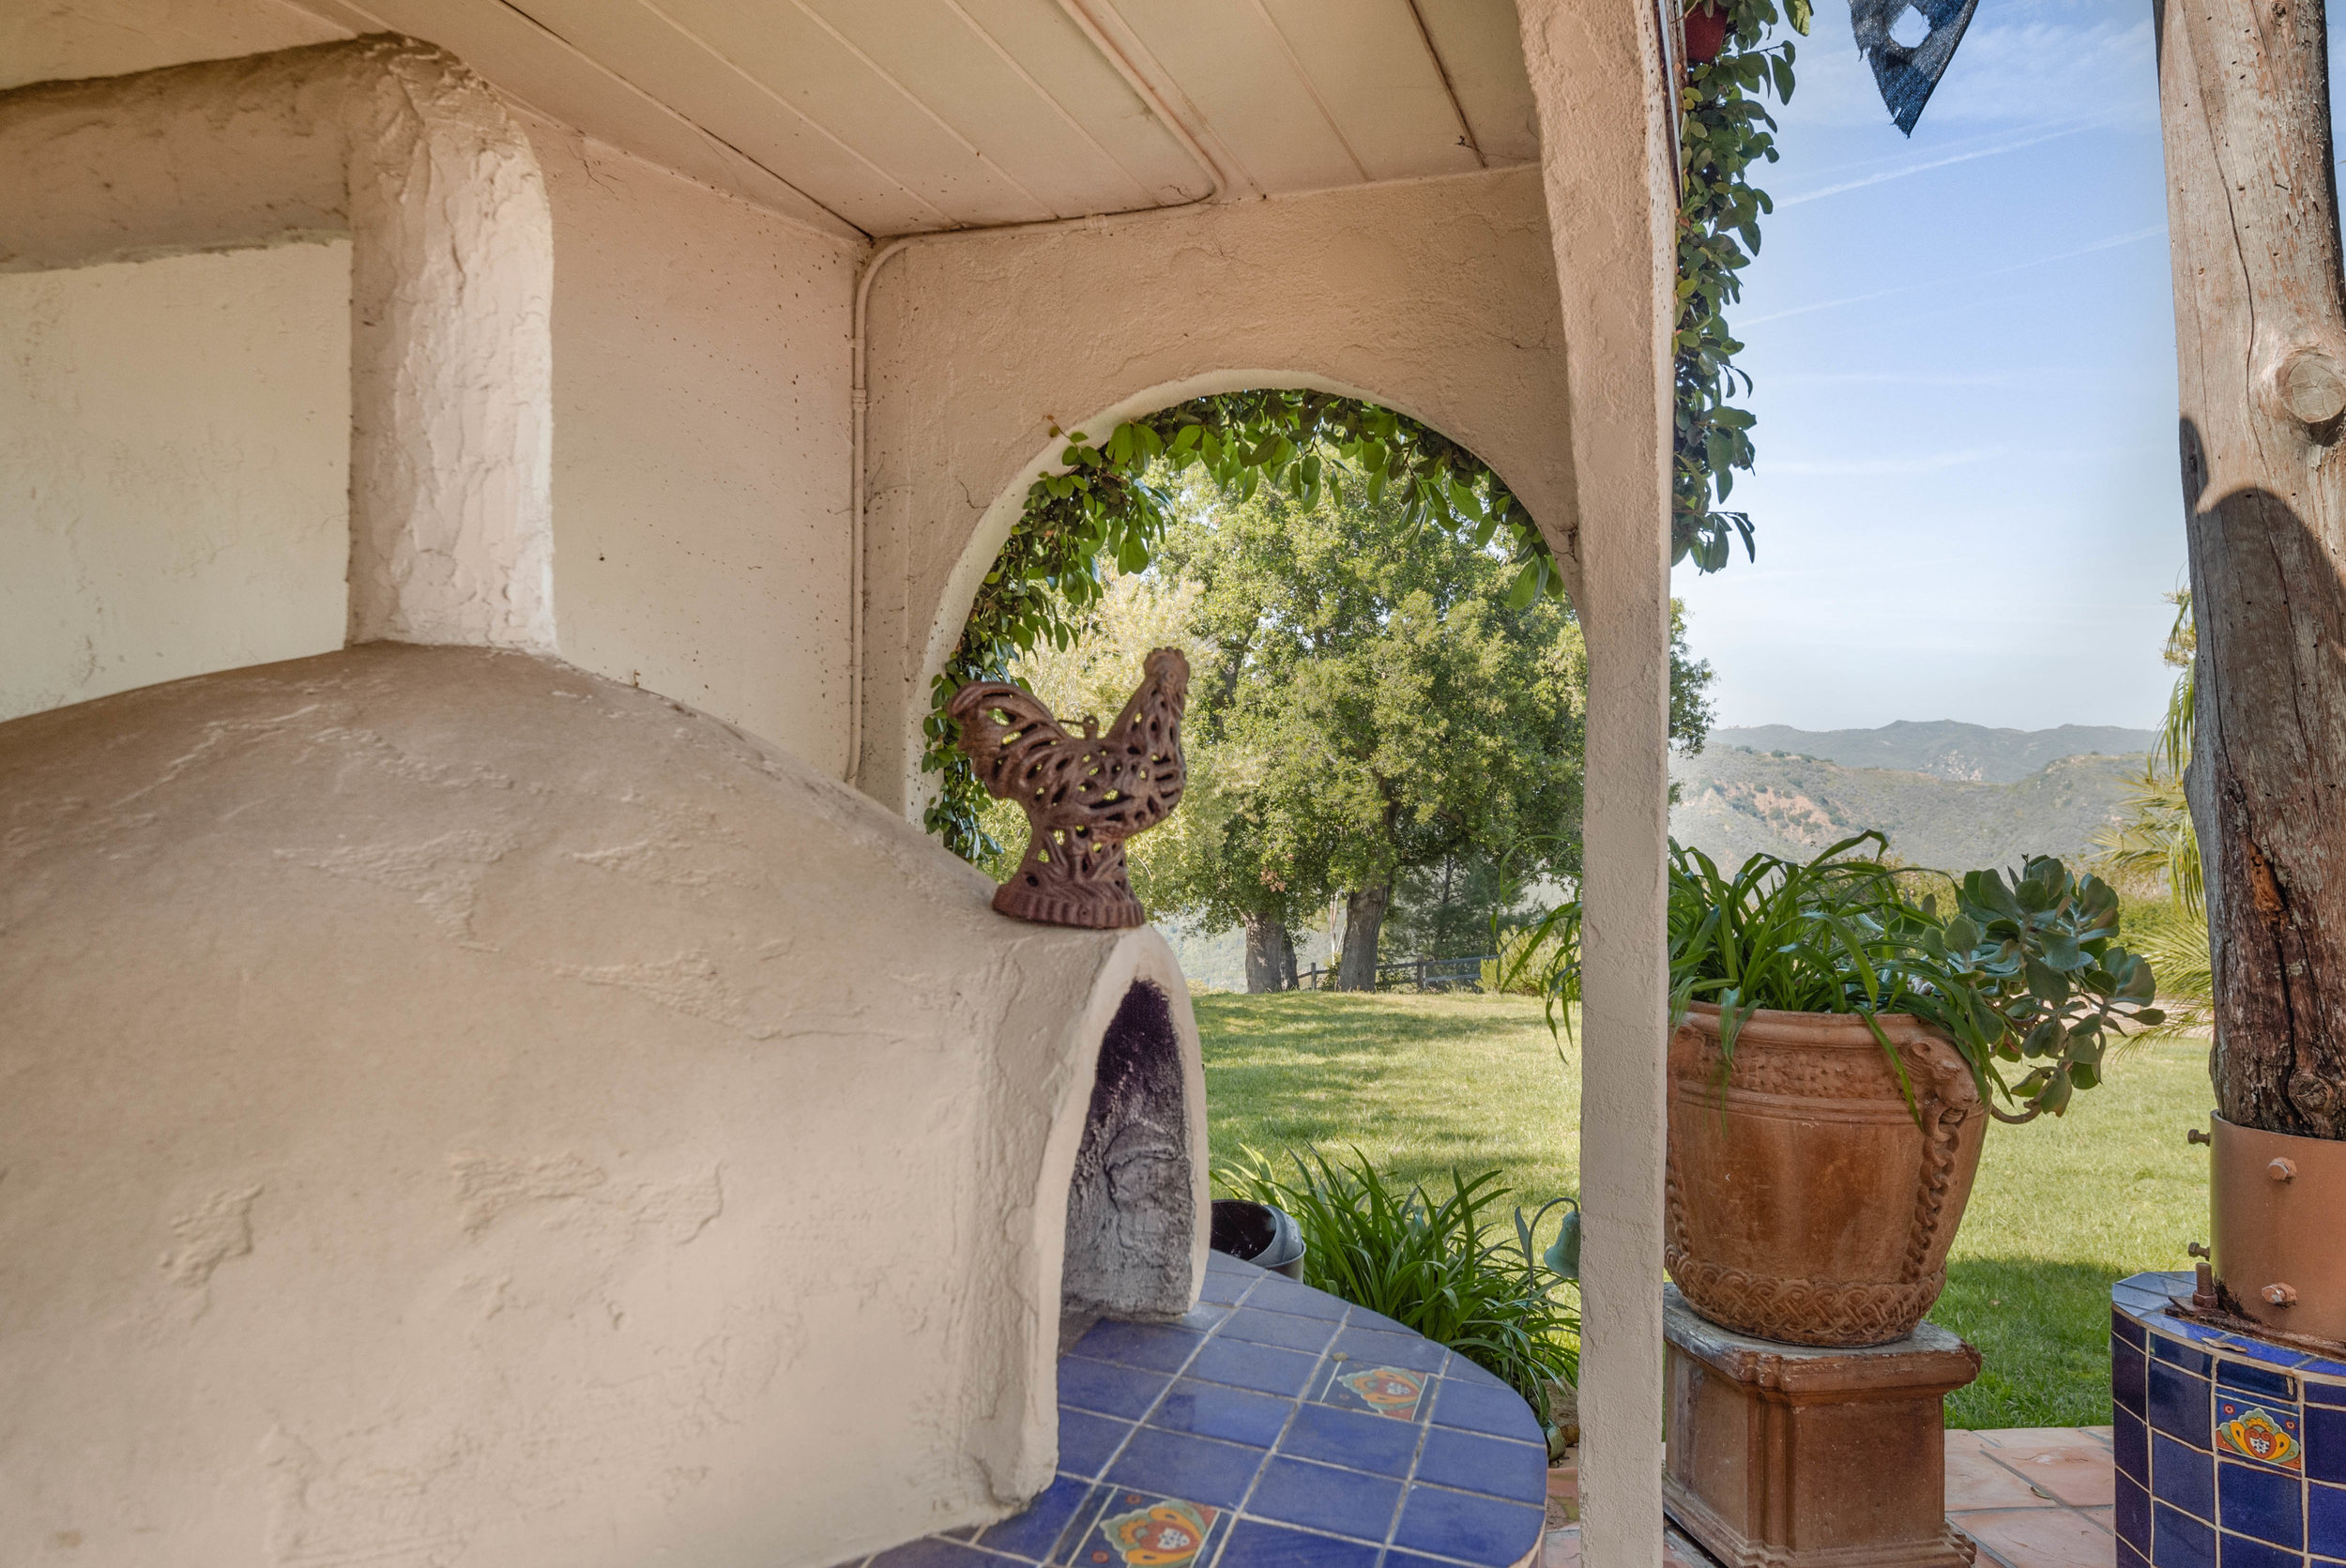 013 Patio 20333 Reigate Road Topanga For Sale Lease The Malibu Life Team Luxury Real Estate.jpg